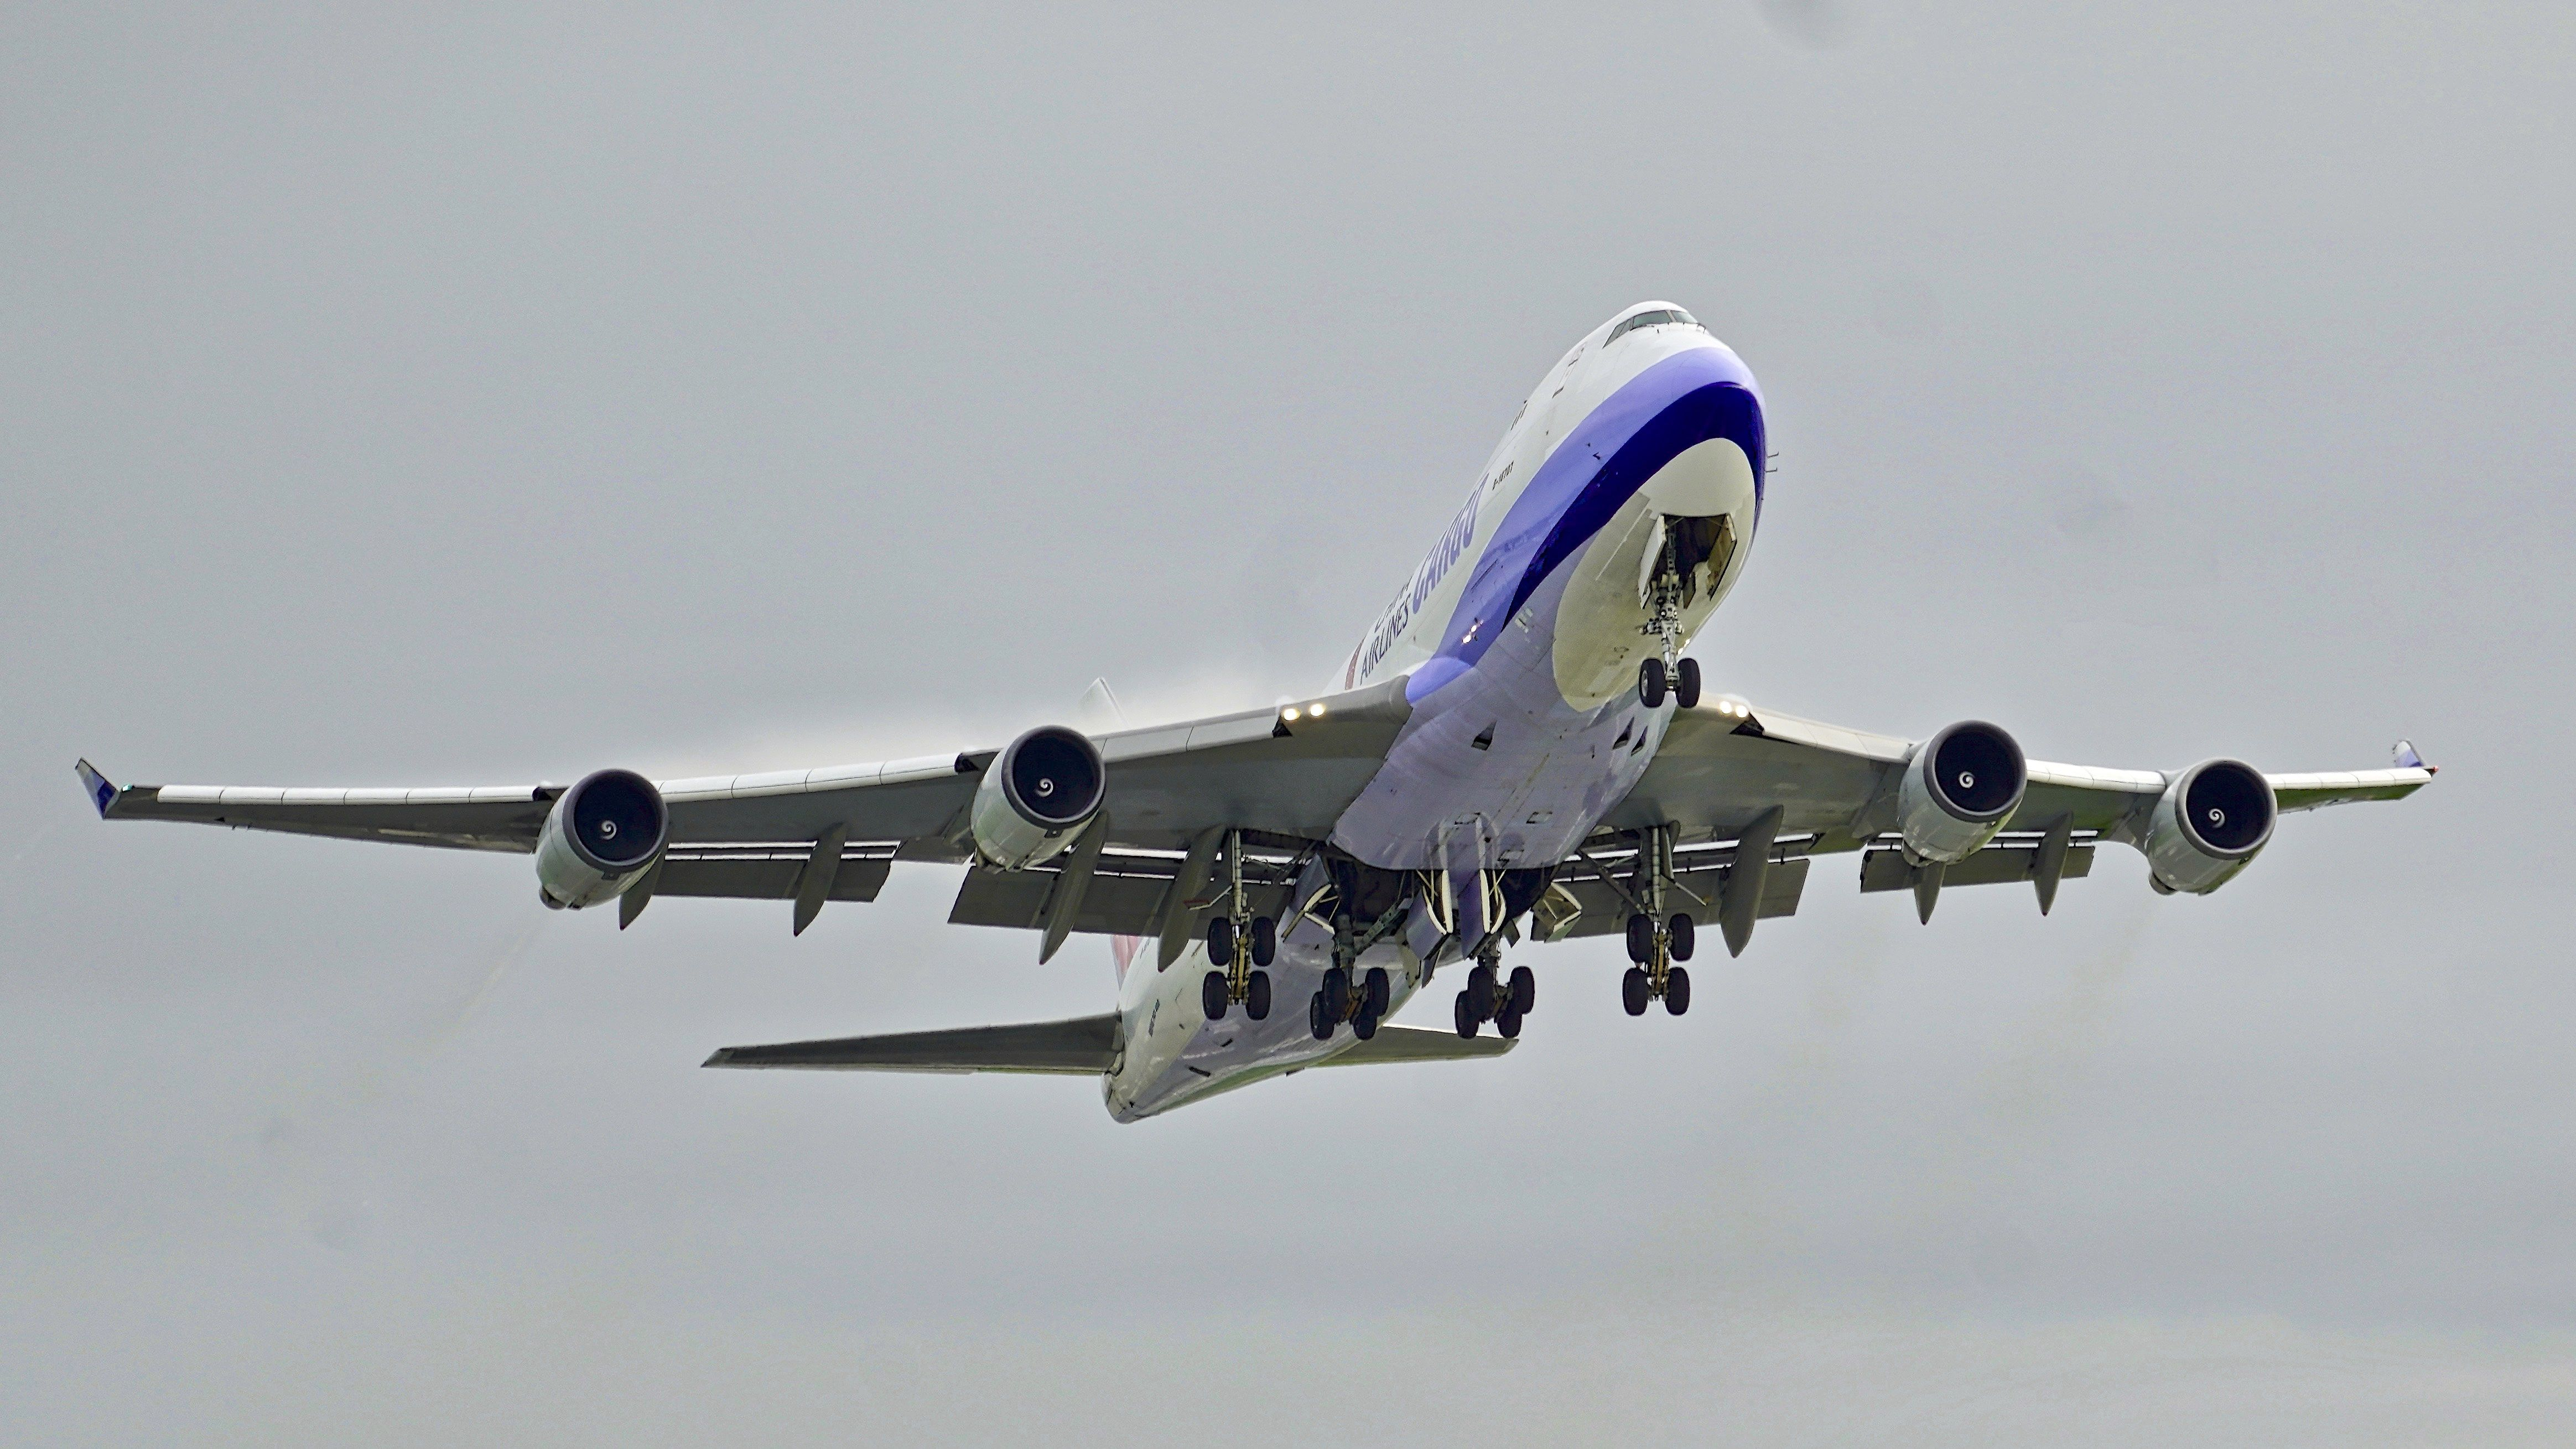 2001 china airlines cargo boeing 747400 b18707 cn 30764